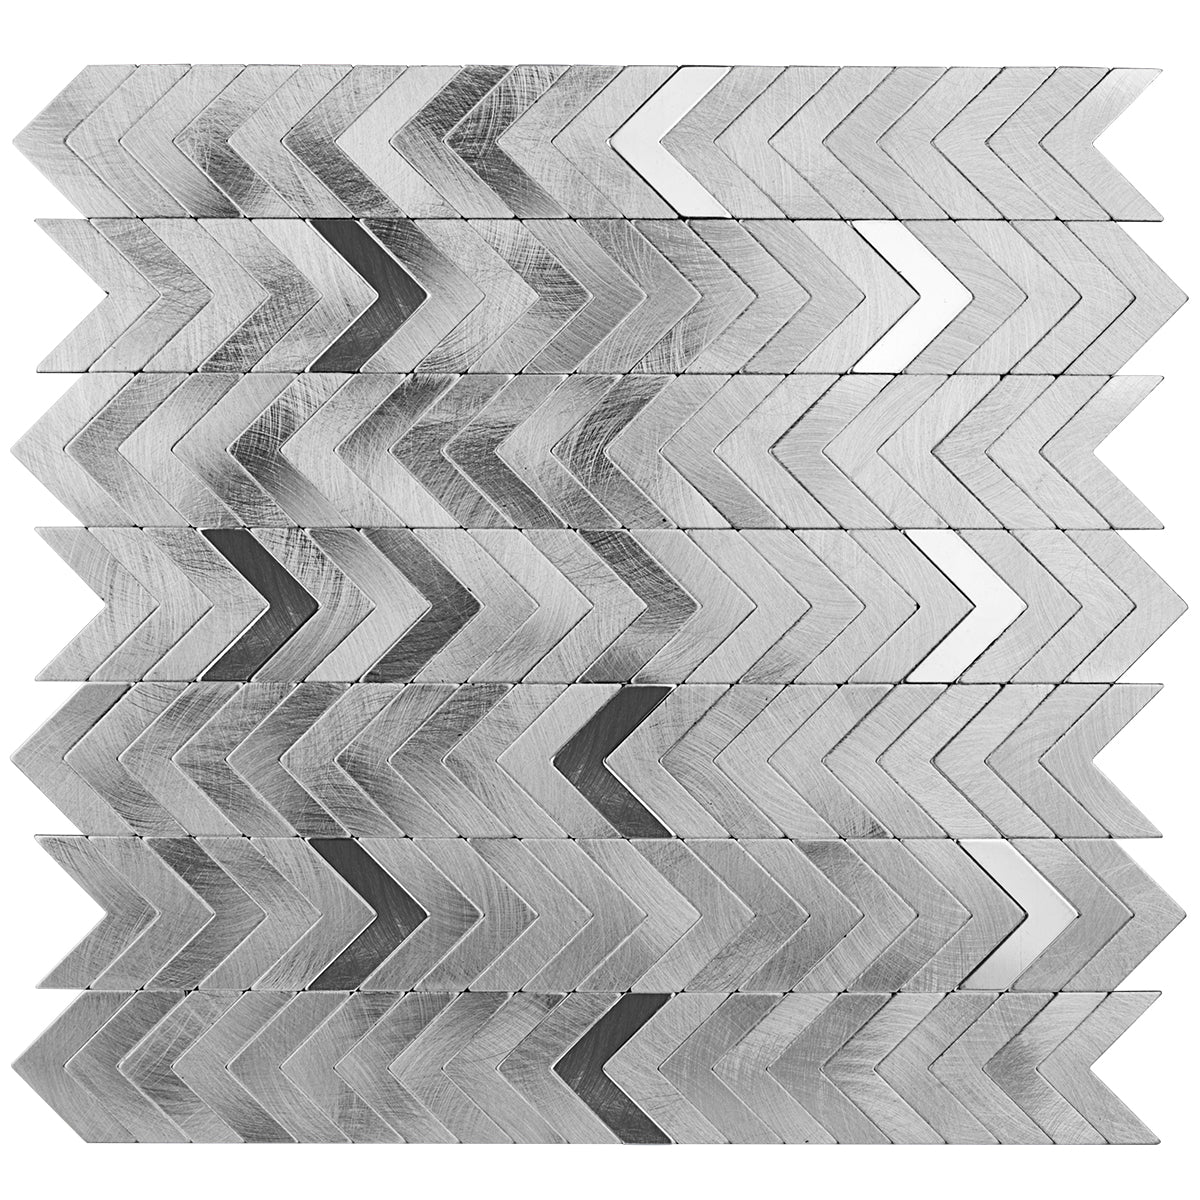 Decopus Peel and Stick Metal Tile Backsplash (Herring Bone, Chevron Silver) for Kitchen, Bathroom